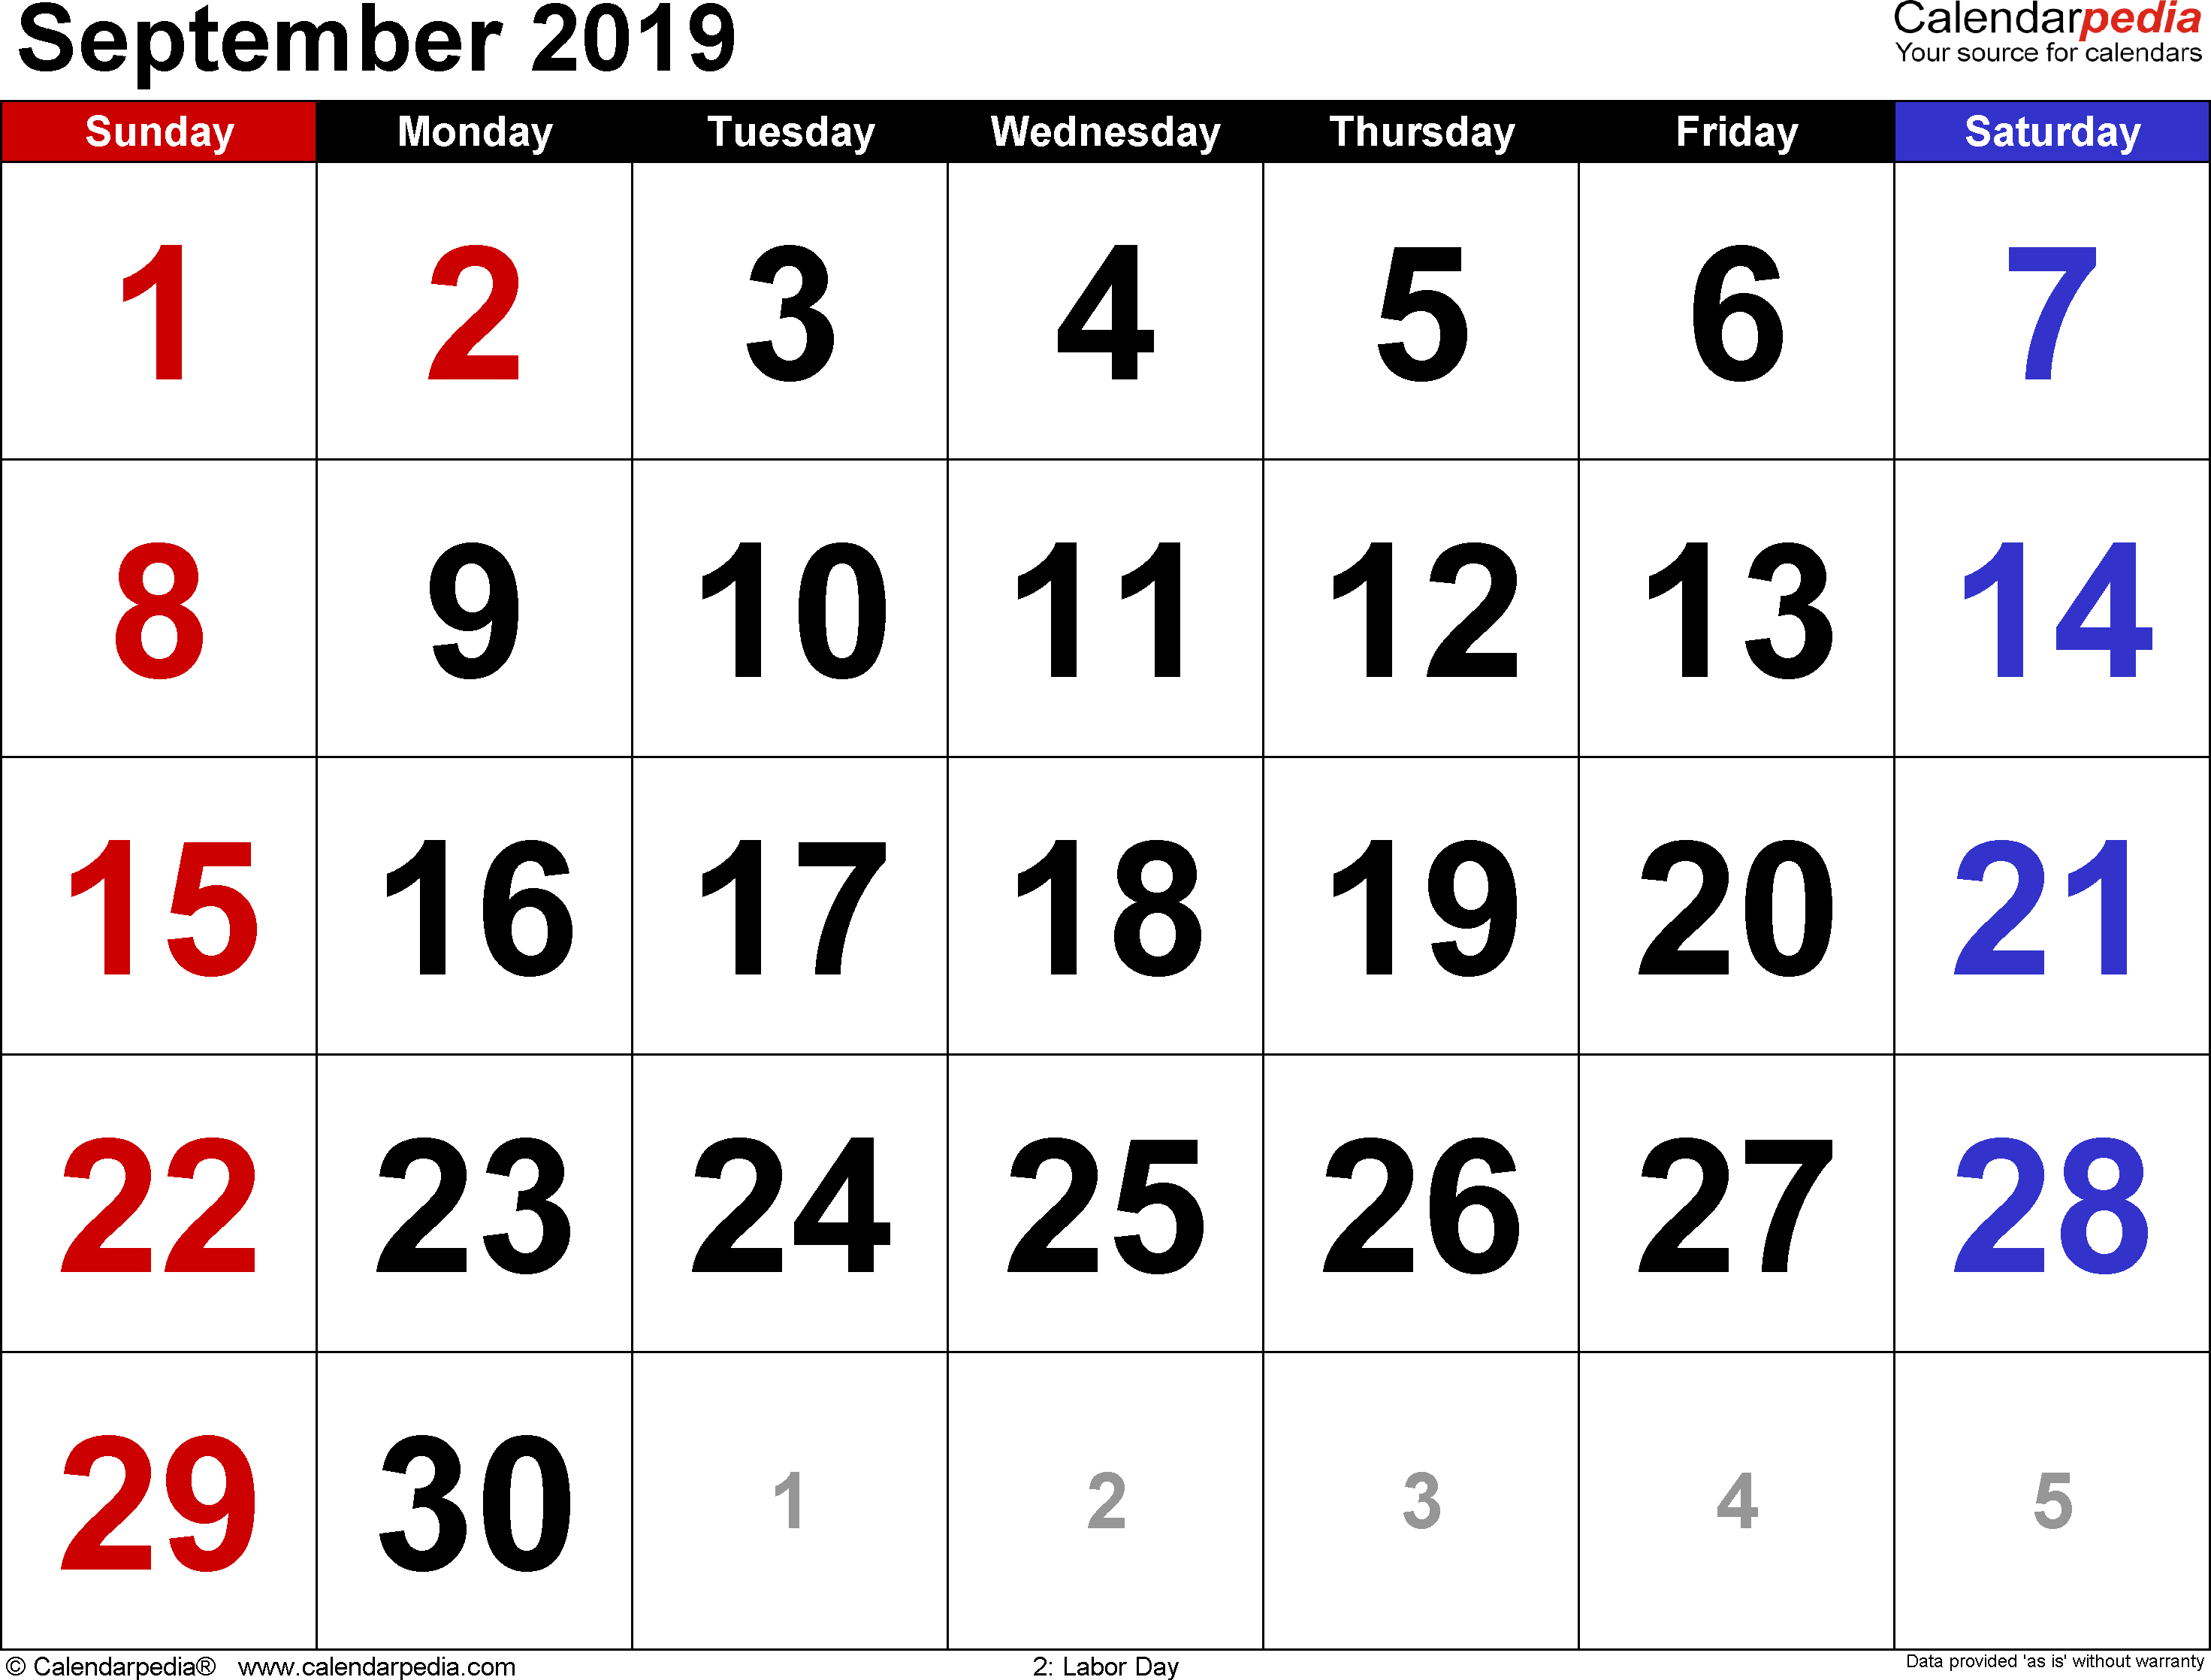 September 2019 calendar, landscape orientation, large numerals, available as printable templates for Word, Excel and PDF